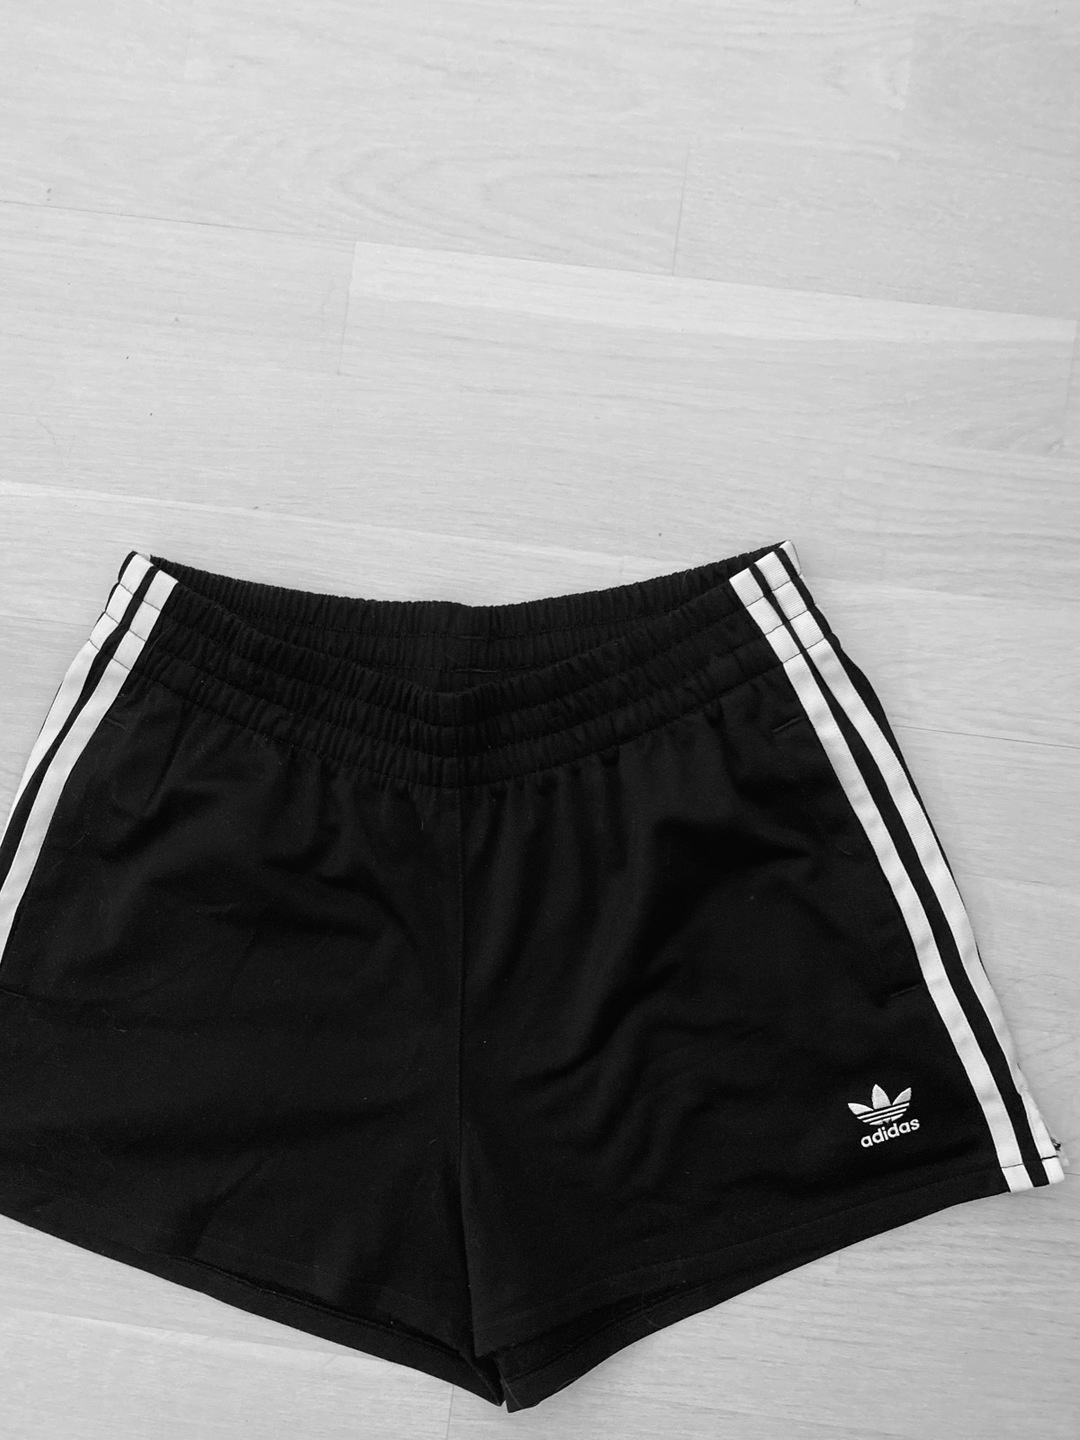 Damen shorts - ADIDAS photo 1